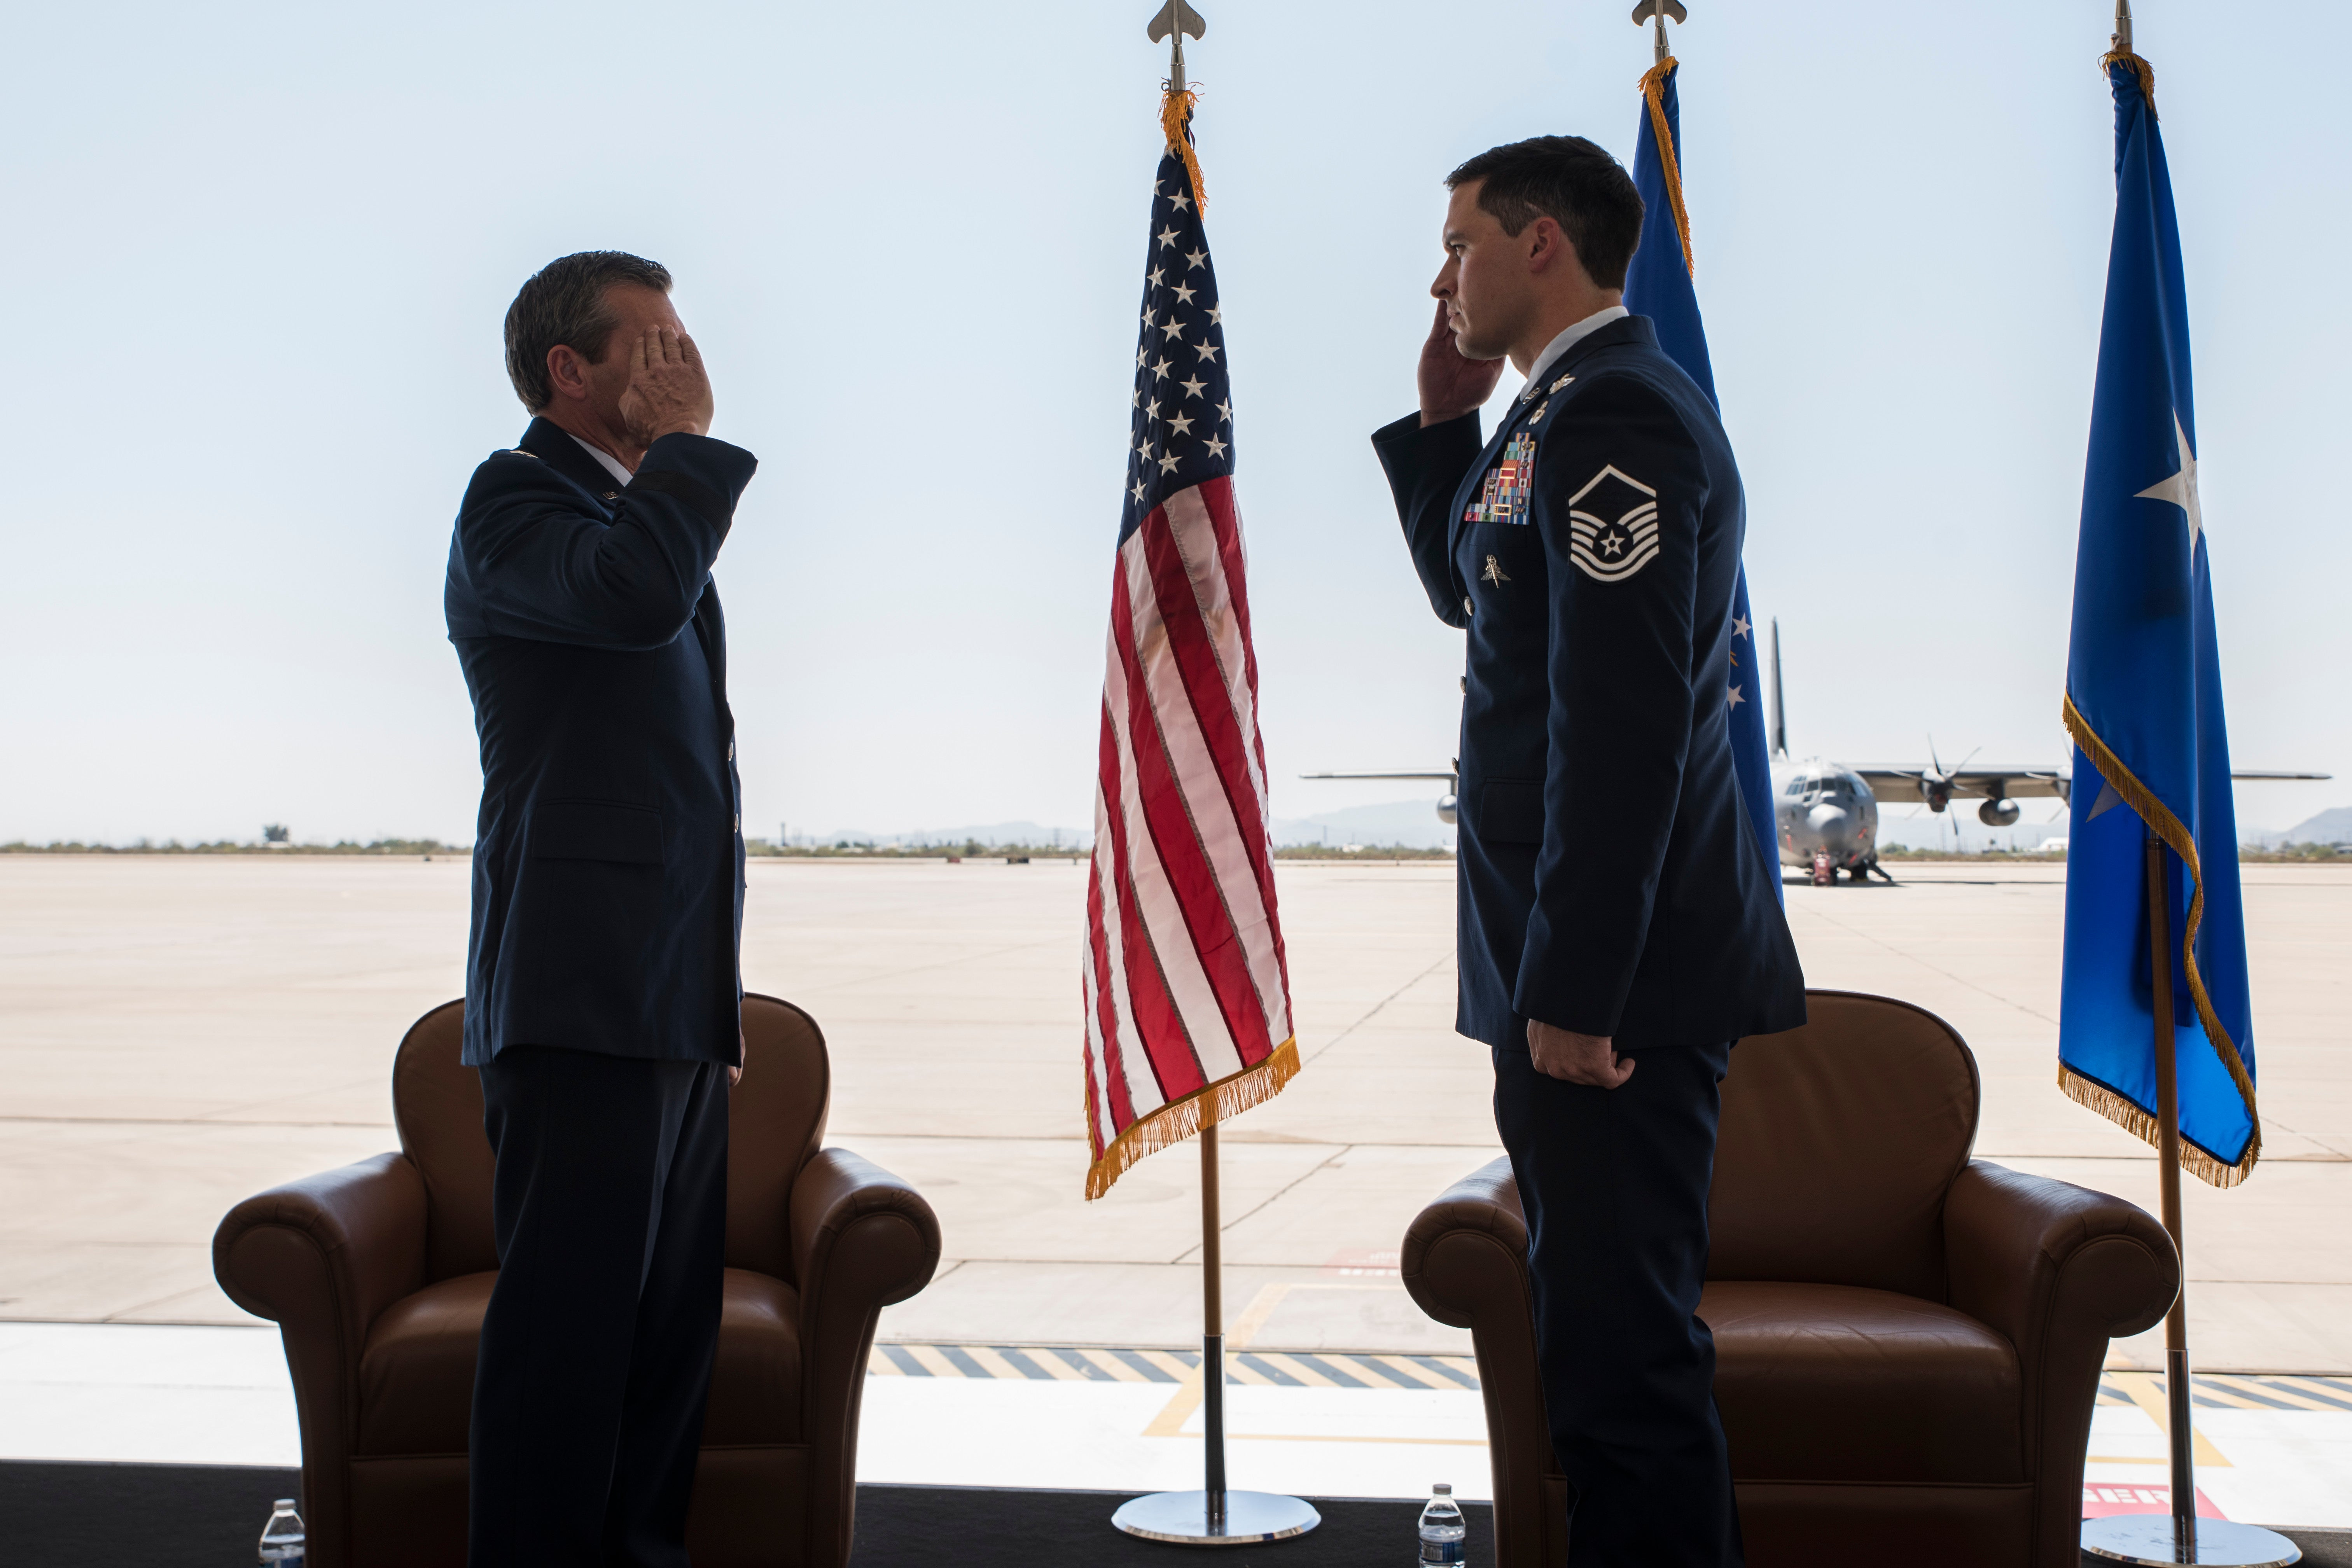 Air Force medics awarded Bronze Star for heroism during special ops raids in Afghanistan